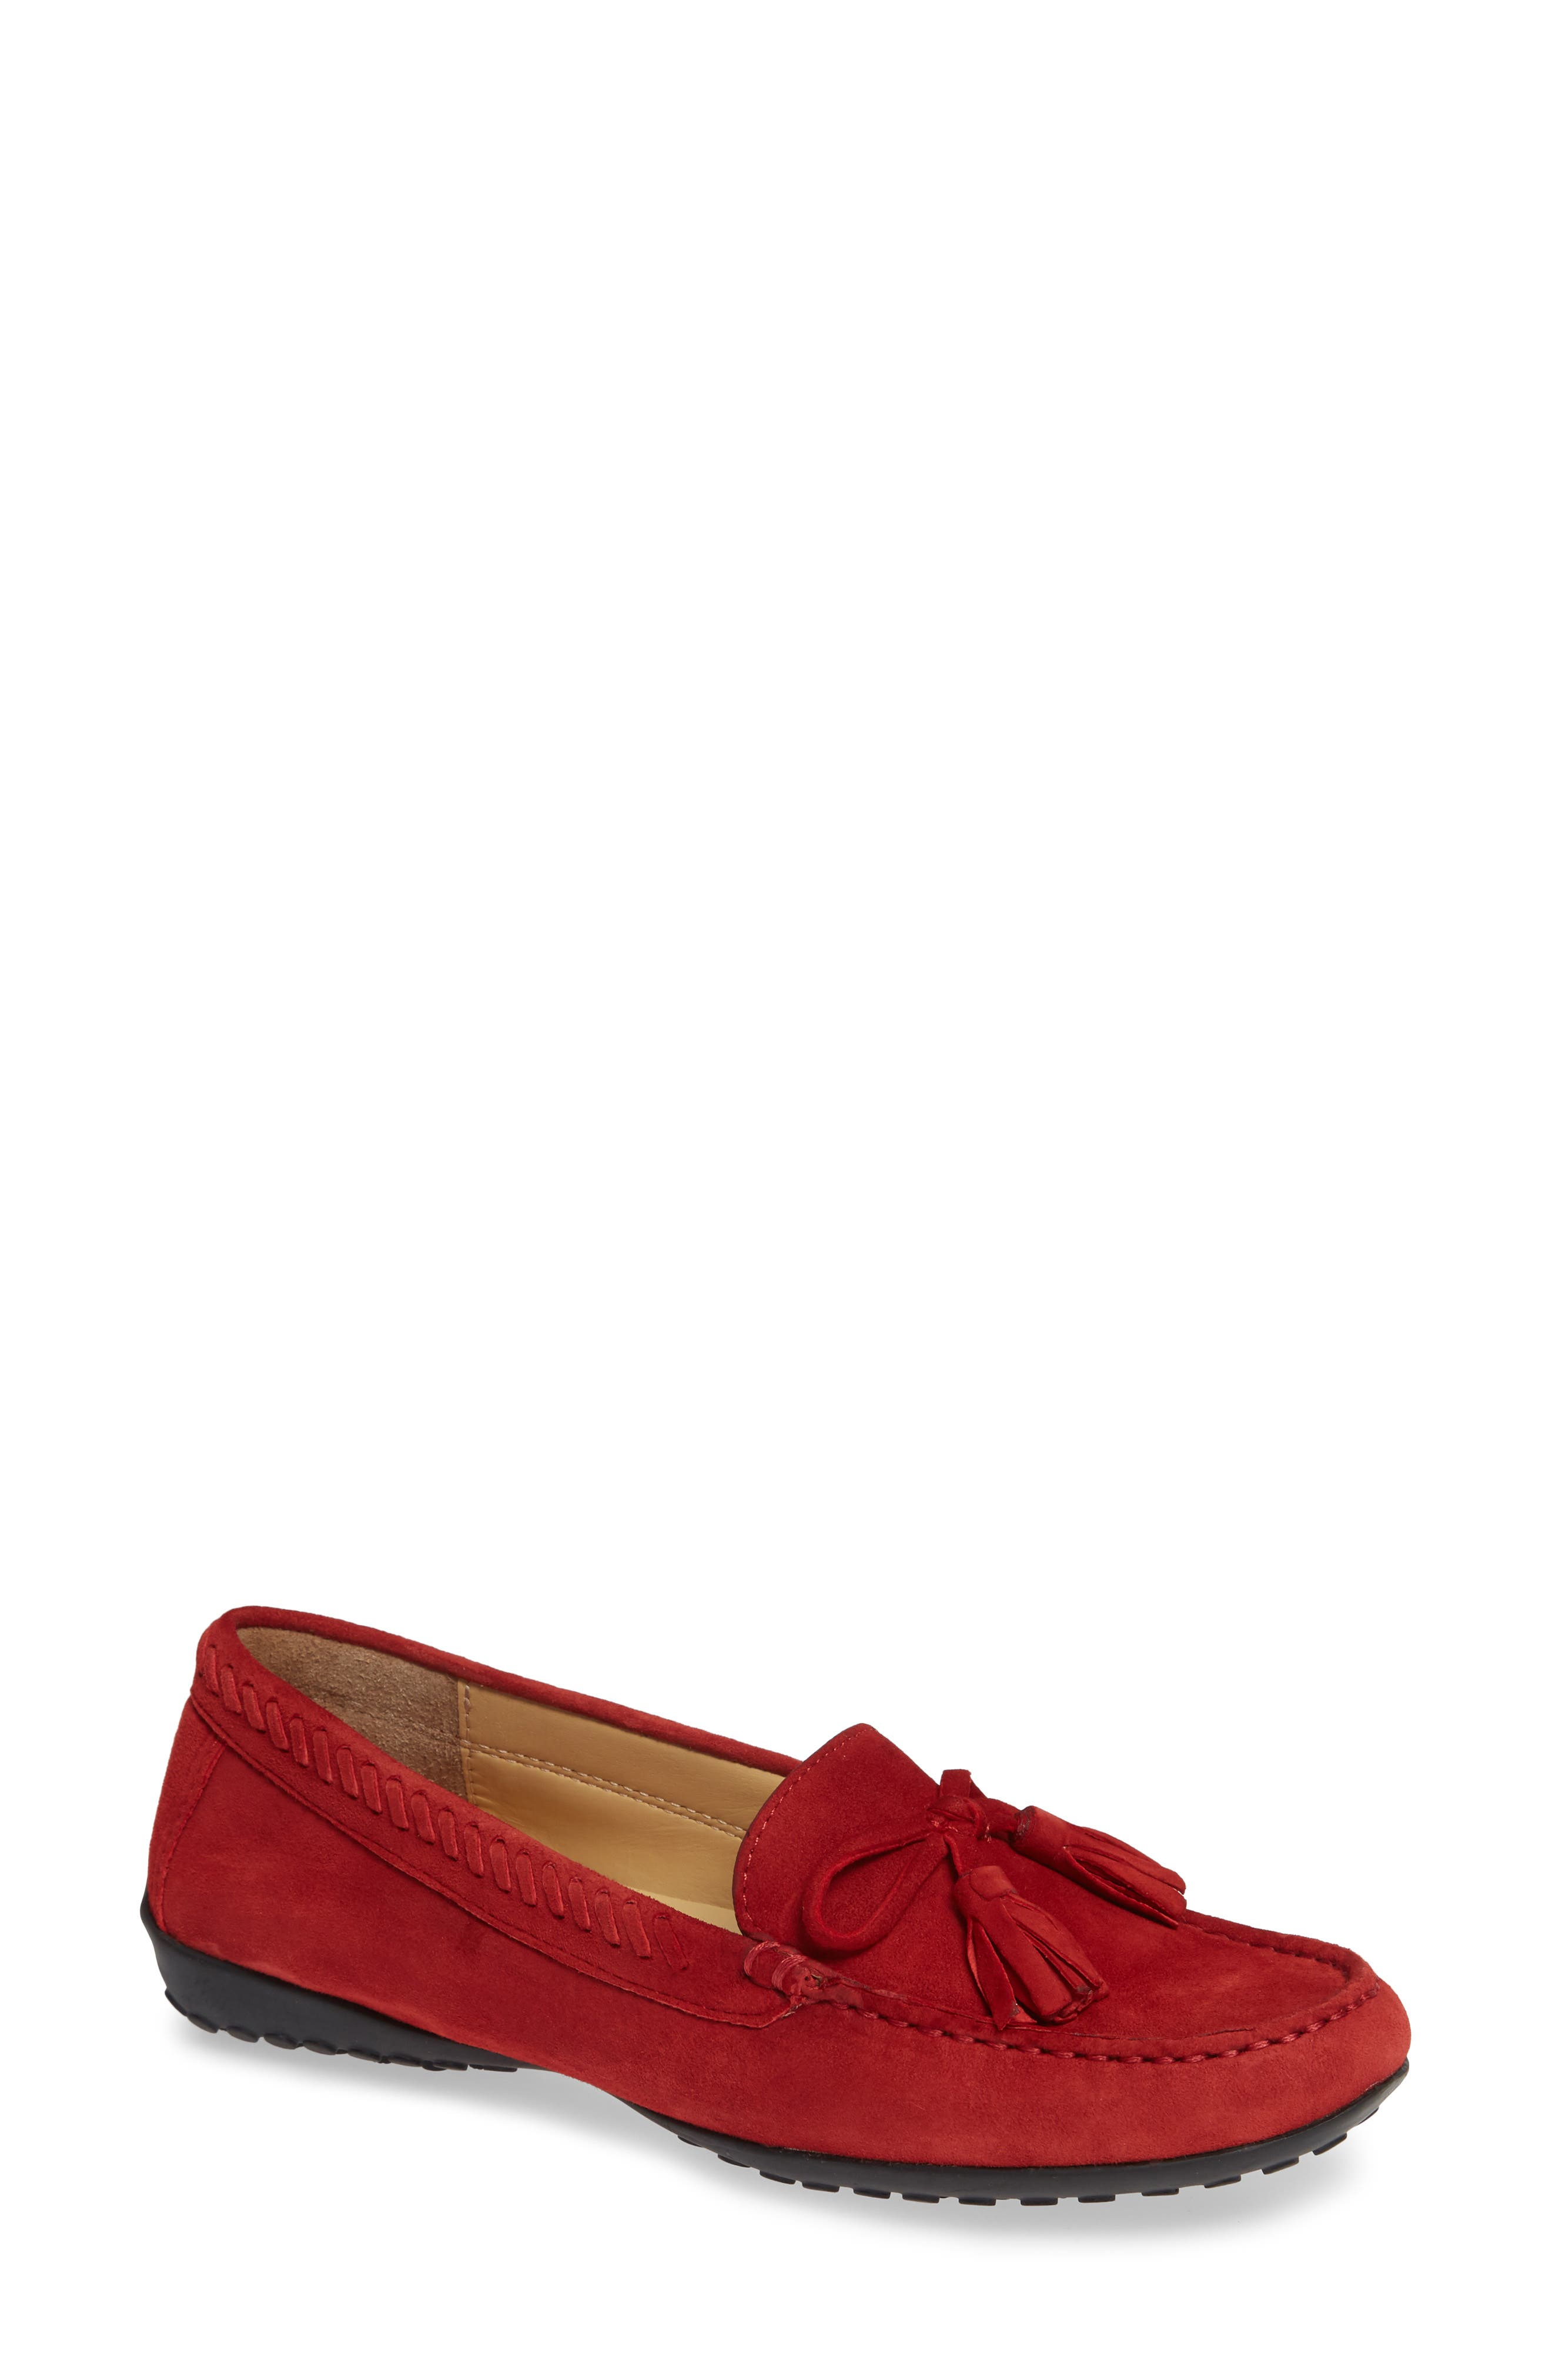 Acajou Driving Moccasin,                             Main thumbnail 1, color,                             Red Suede